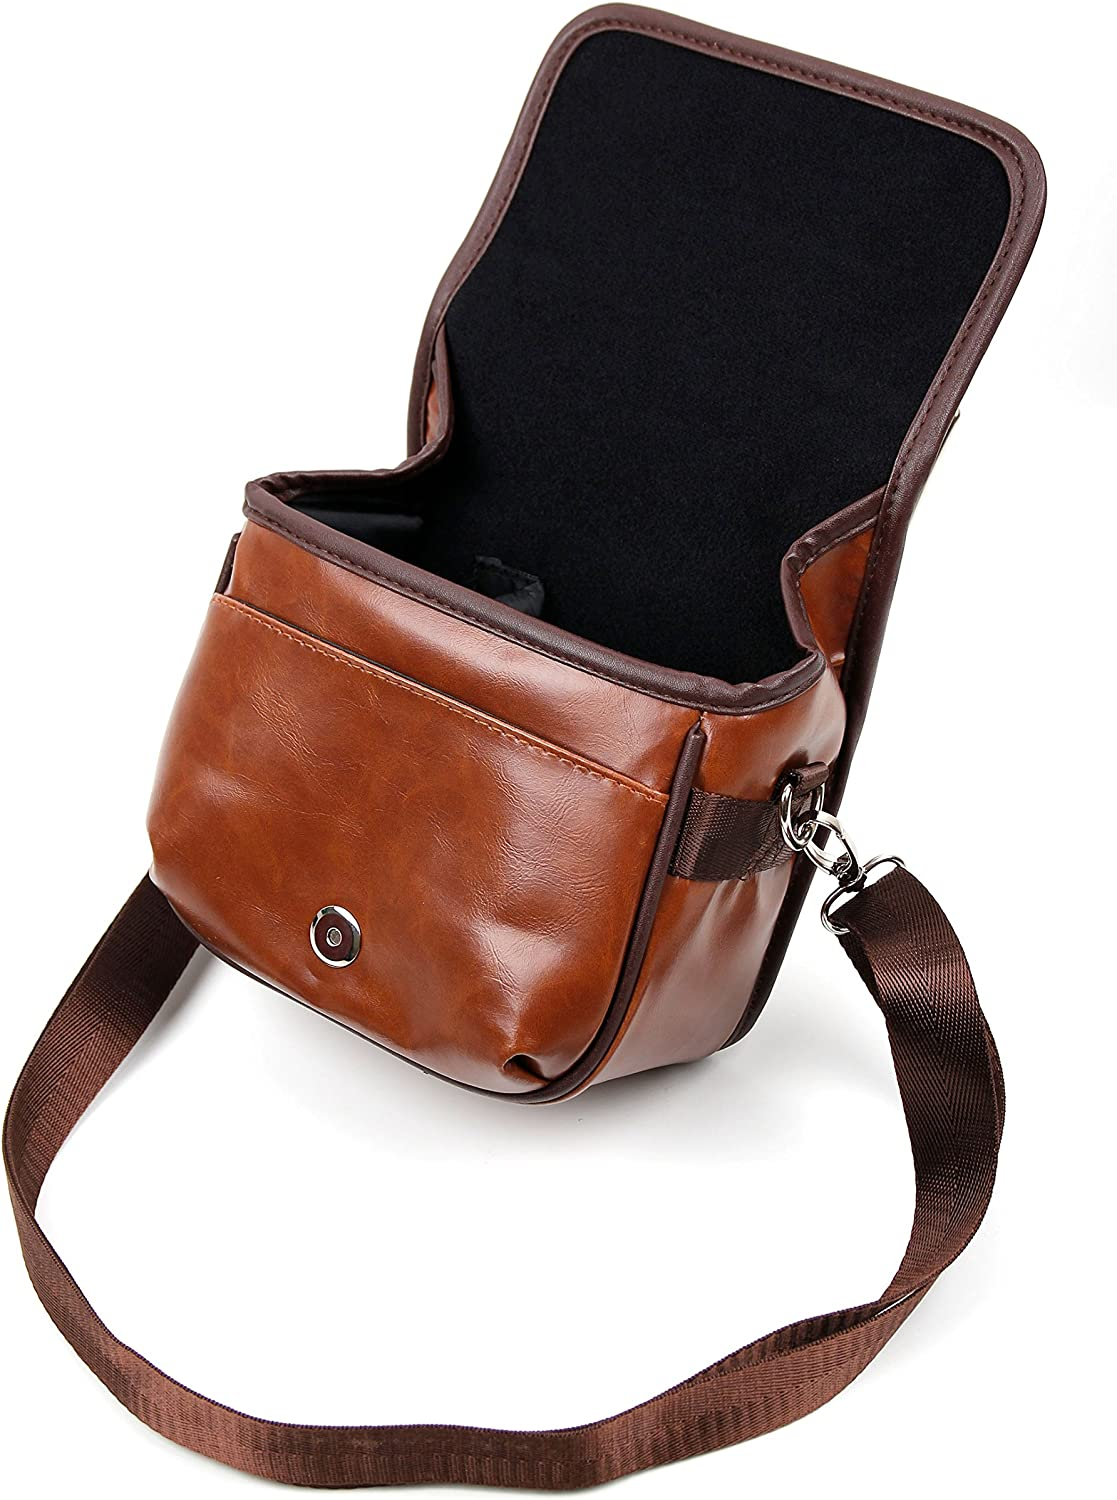 Compatible with Canon Legria Mini X DURAGADGET Small Brown PU Leather Satchel Carry Bag